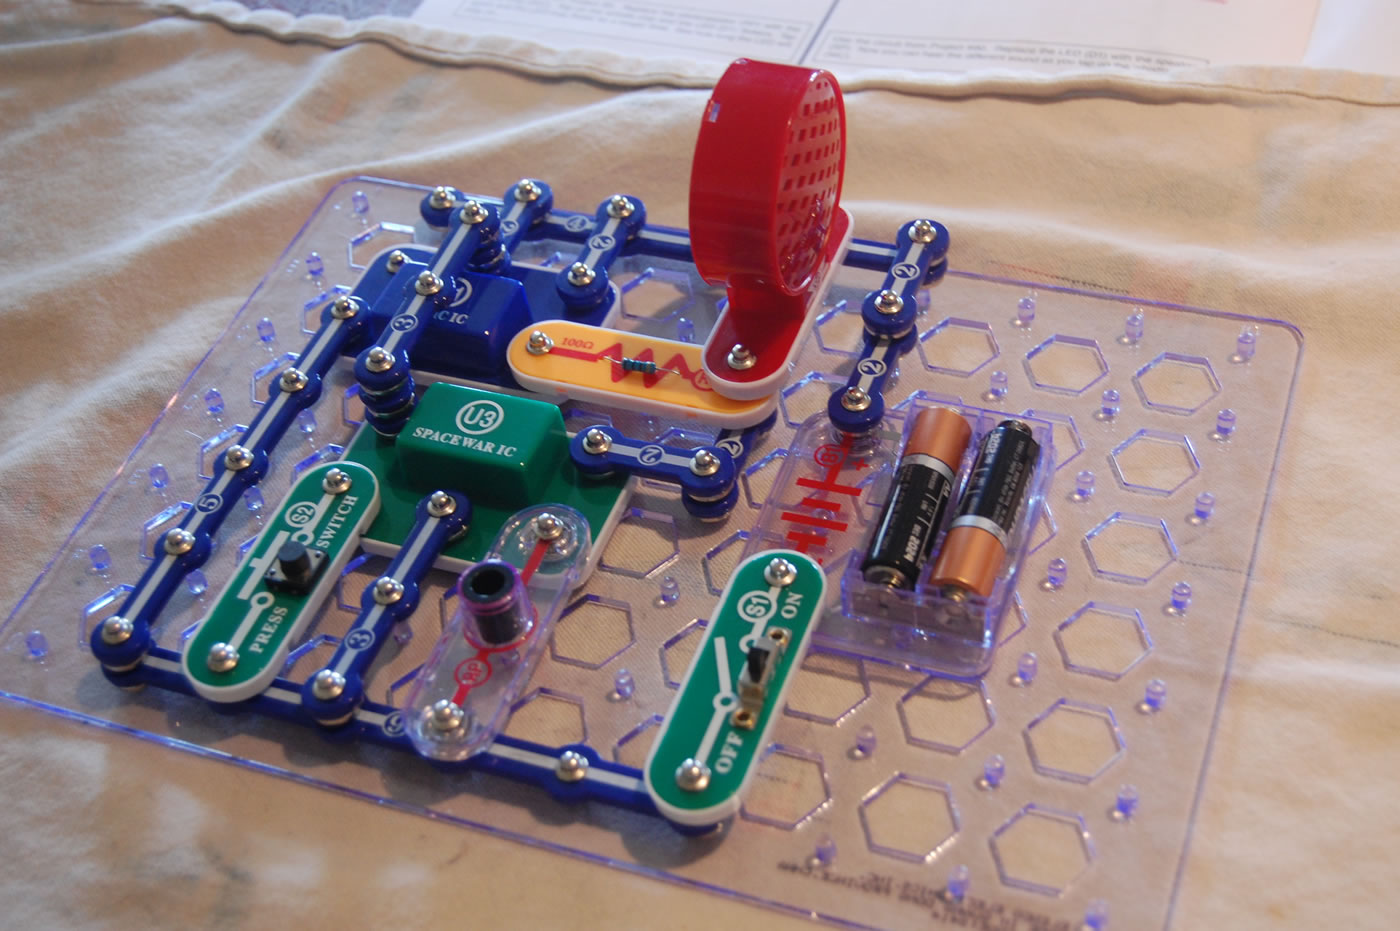 Cool Electronic Snap Circuit Kit Petkid One Kids Blogging Adventure Circuits For